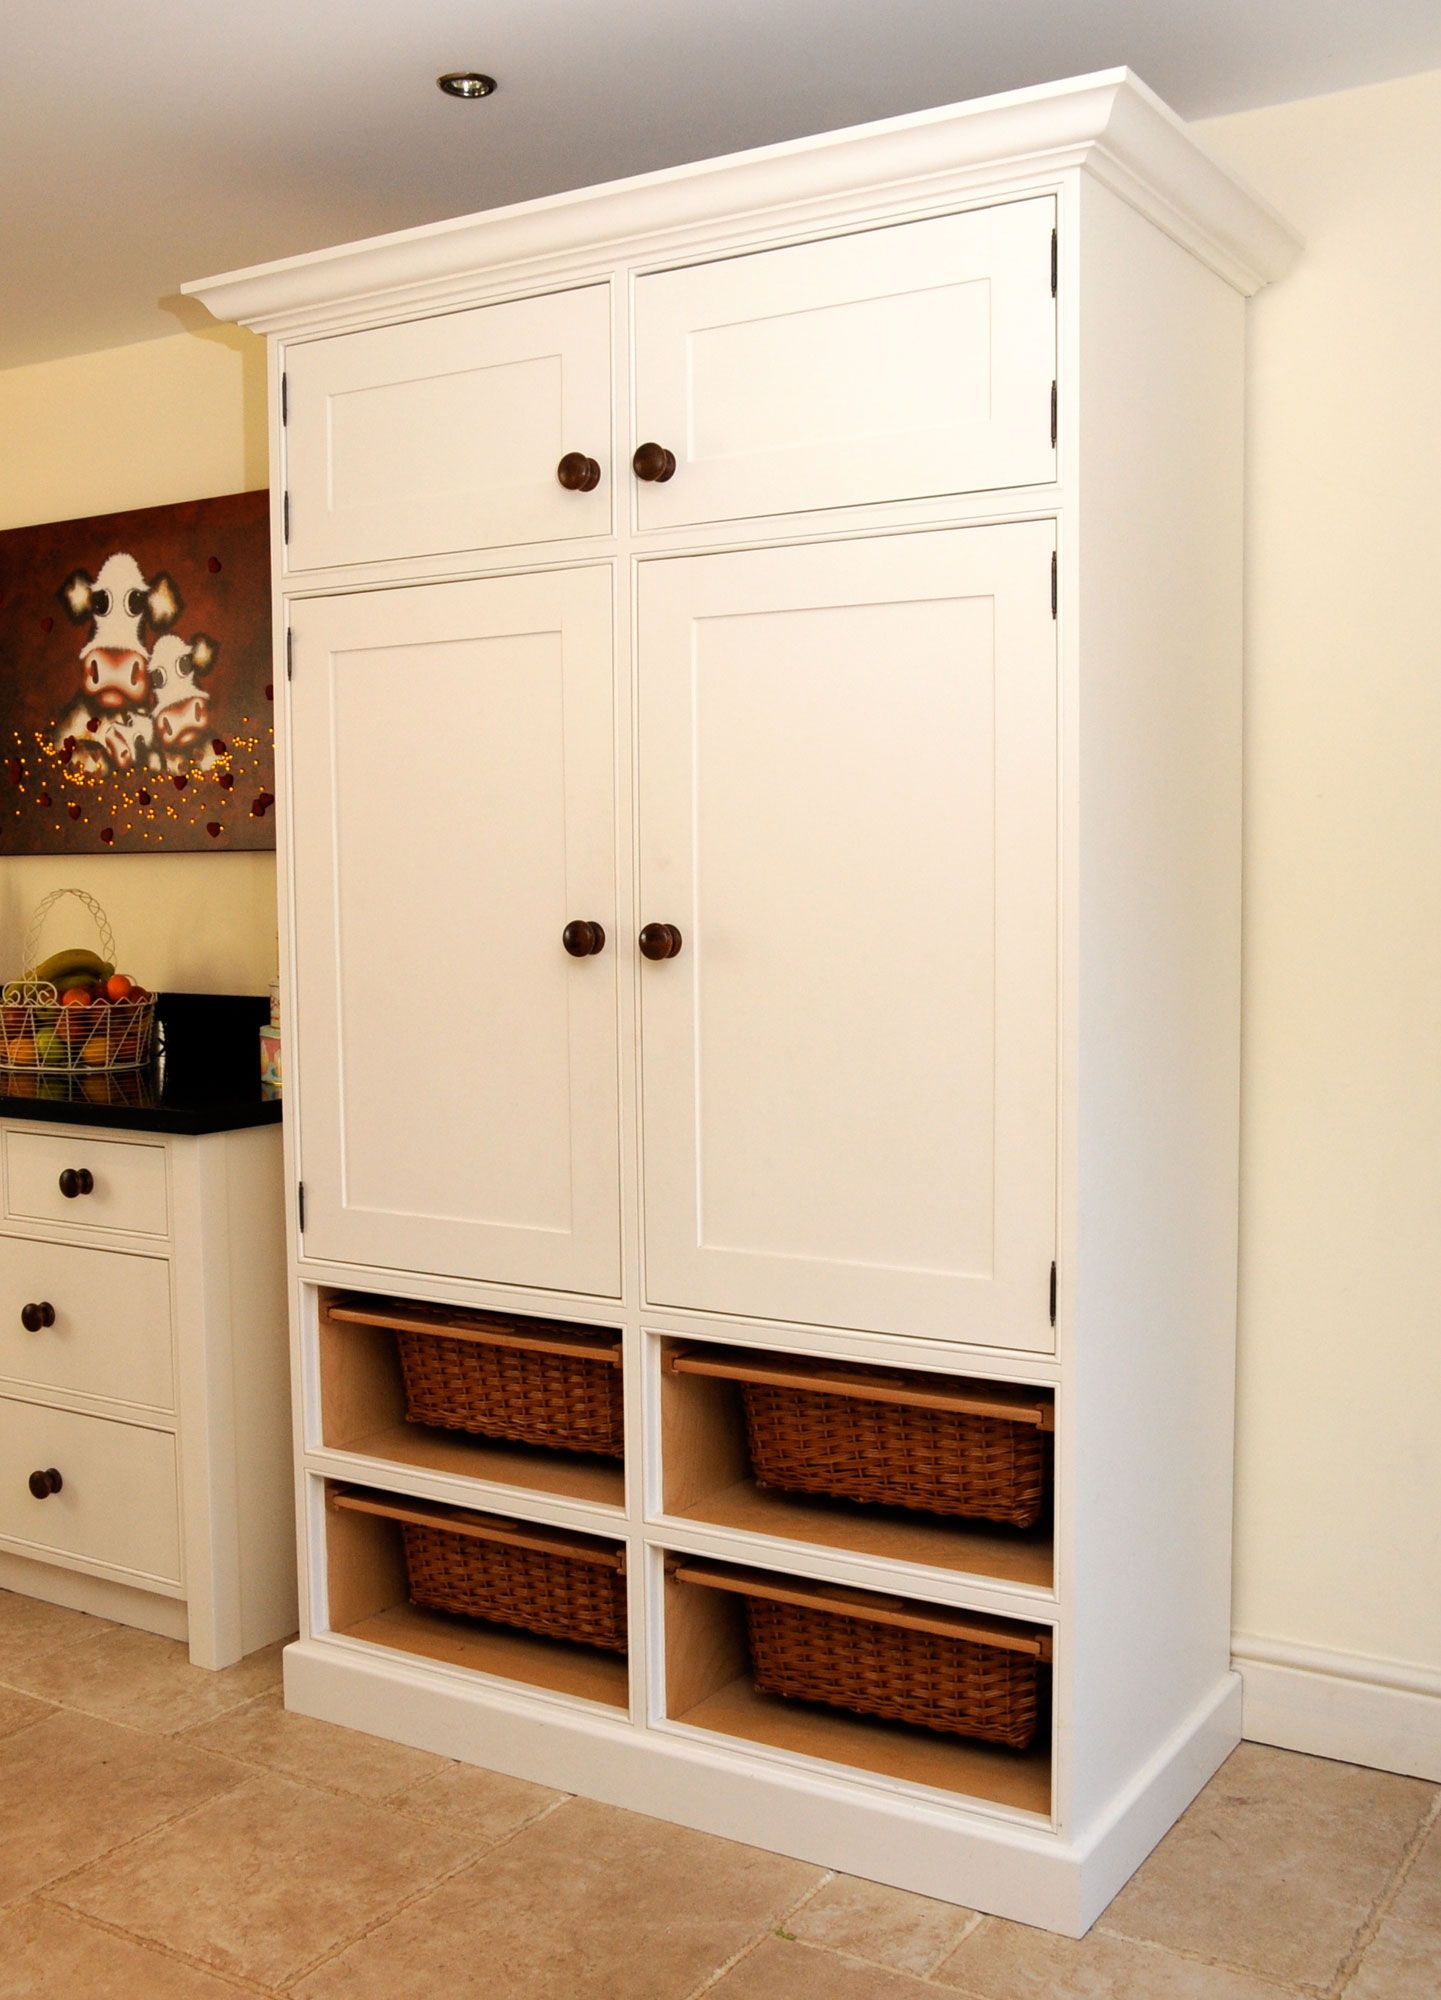 23 Efficient Freestanding Kitchen Cabinet Ideas that Will Leave You